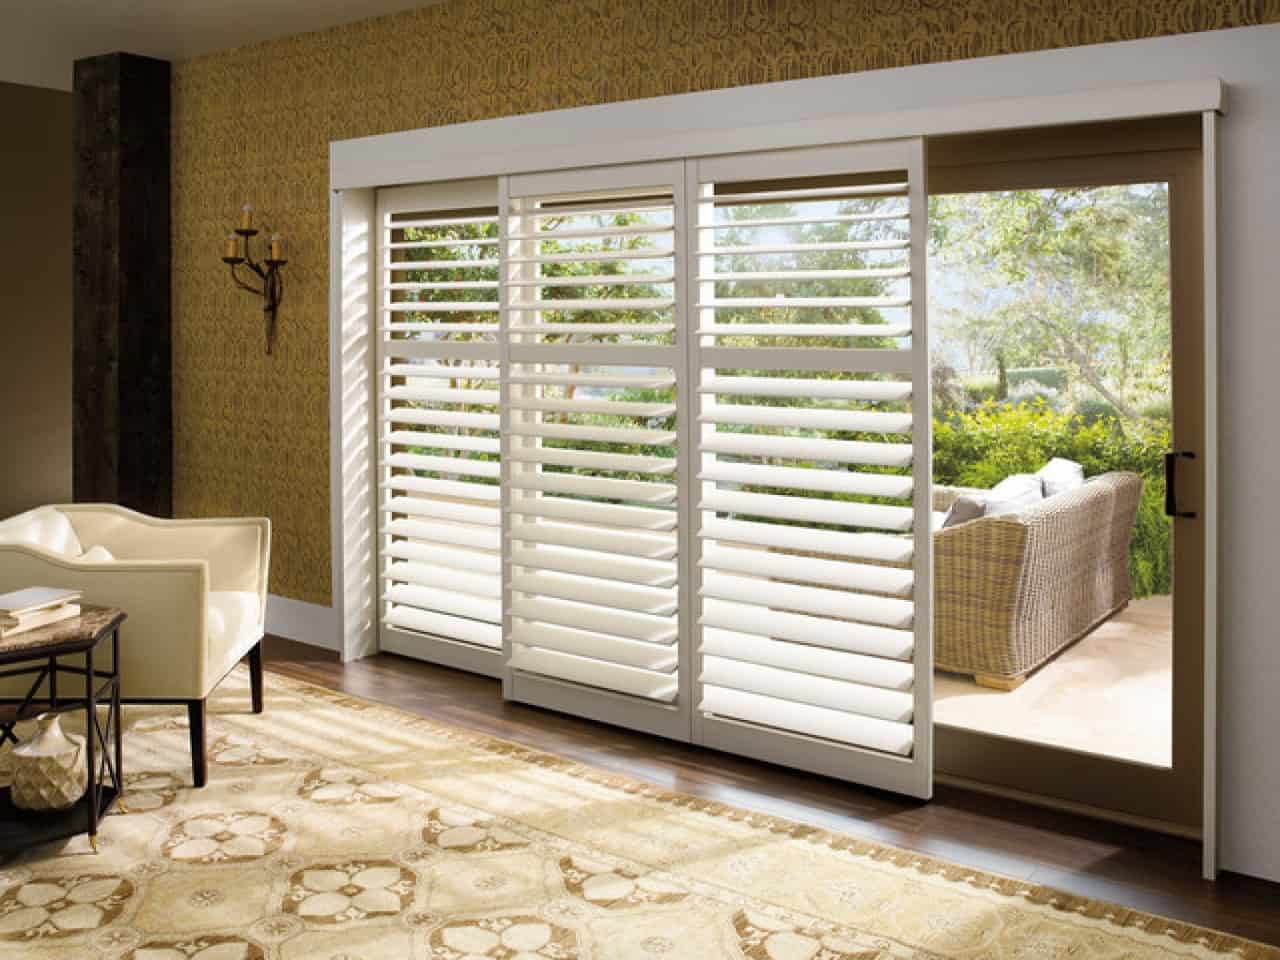 Window treatment ideas for sliding glass patio doors - Window Treatments For Sliding Glass Doors Ideas Tips